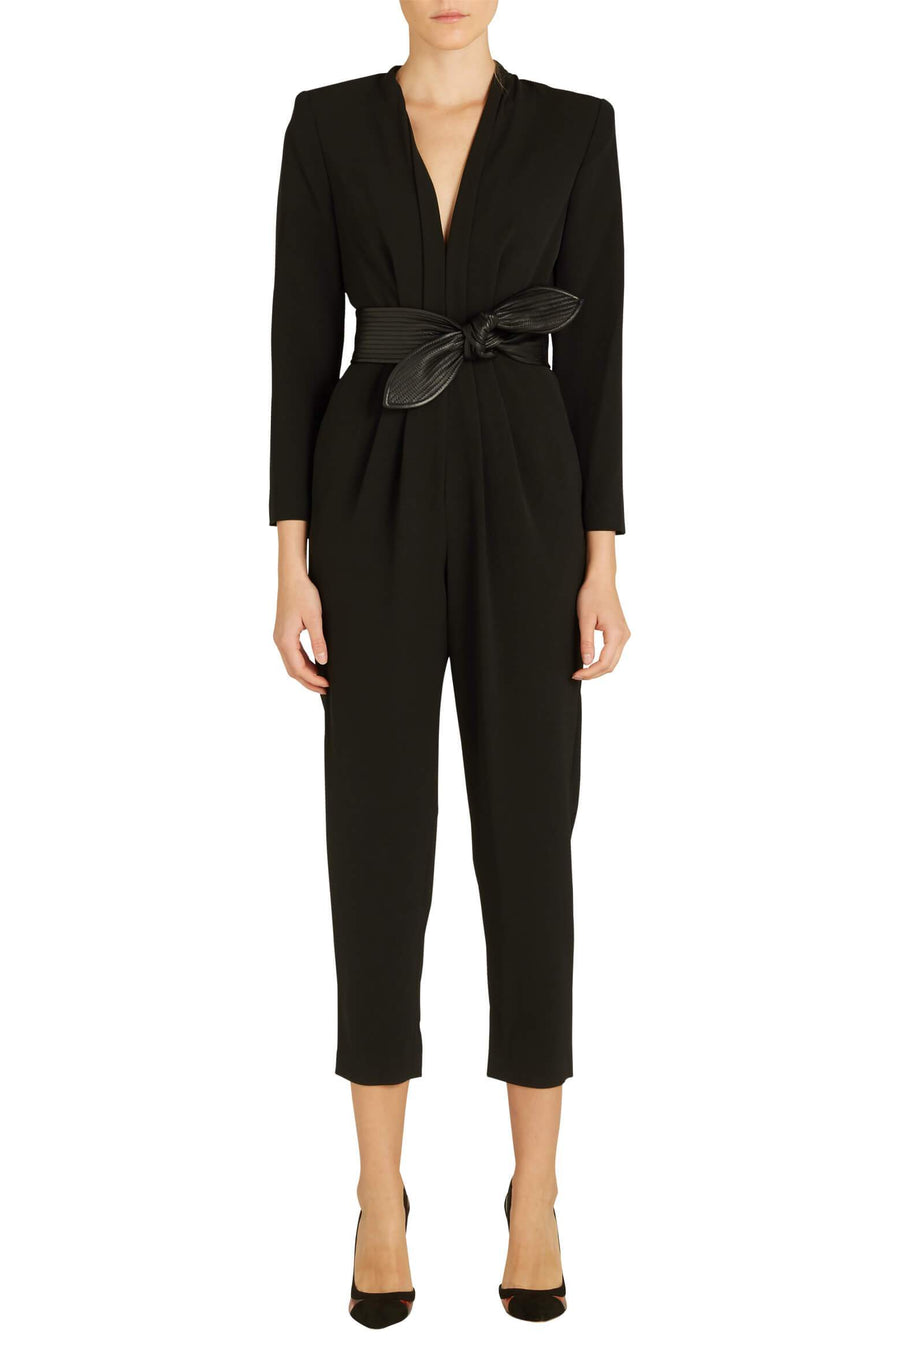 A.L.C. Kieran Jumpsuit in black from The New Trend